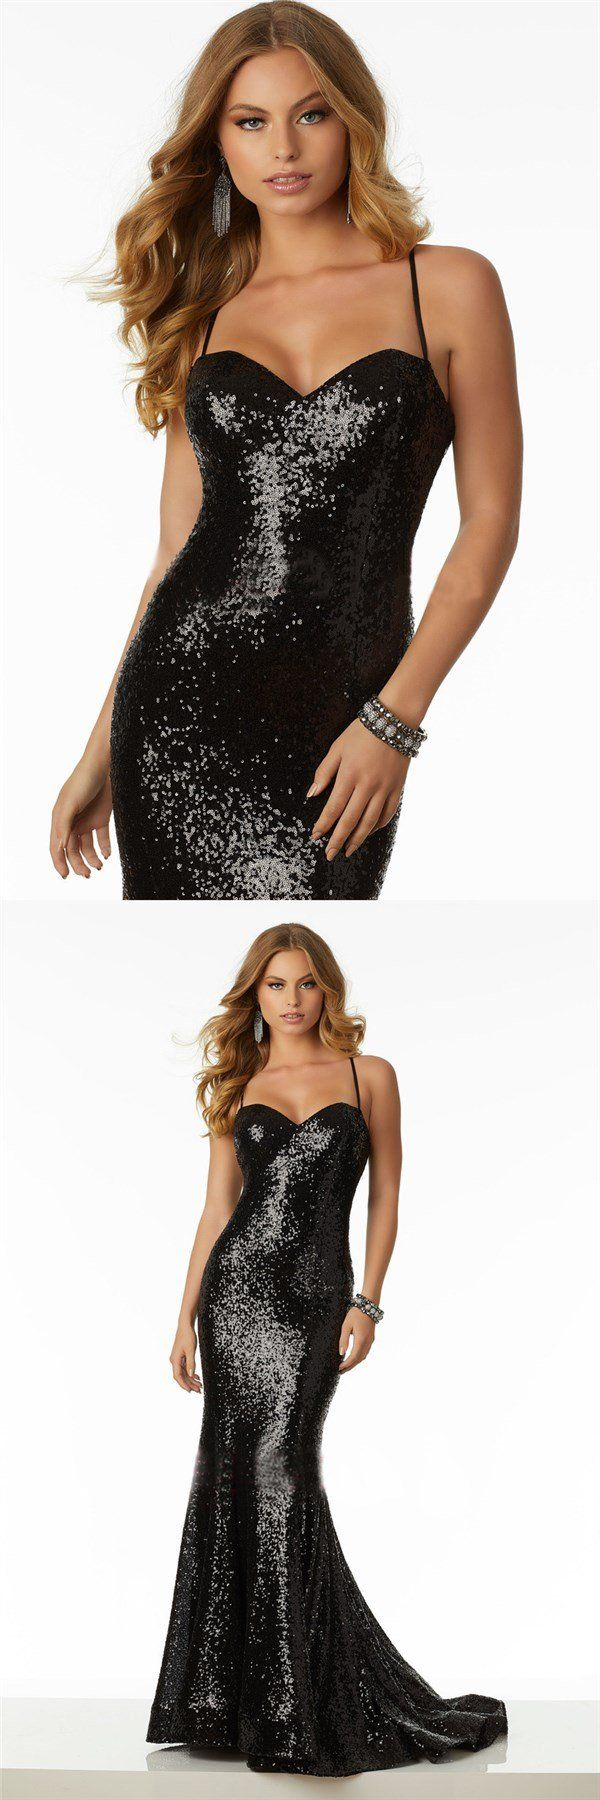 Charming red gold black sequin sparkly prom dresses party formal